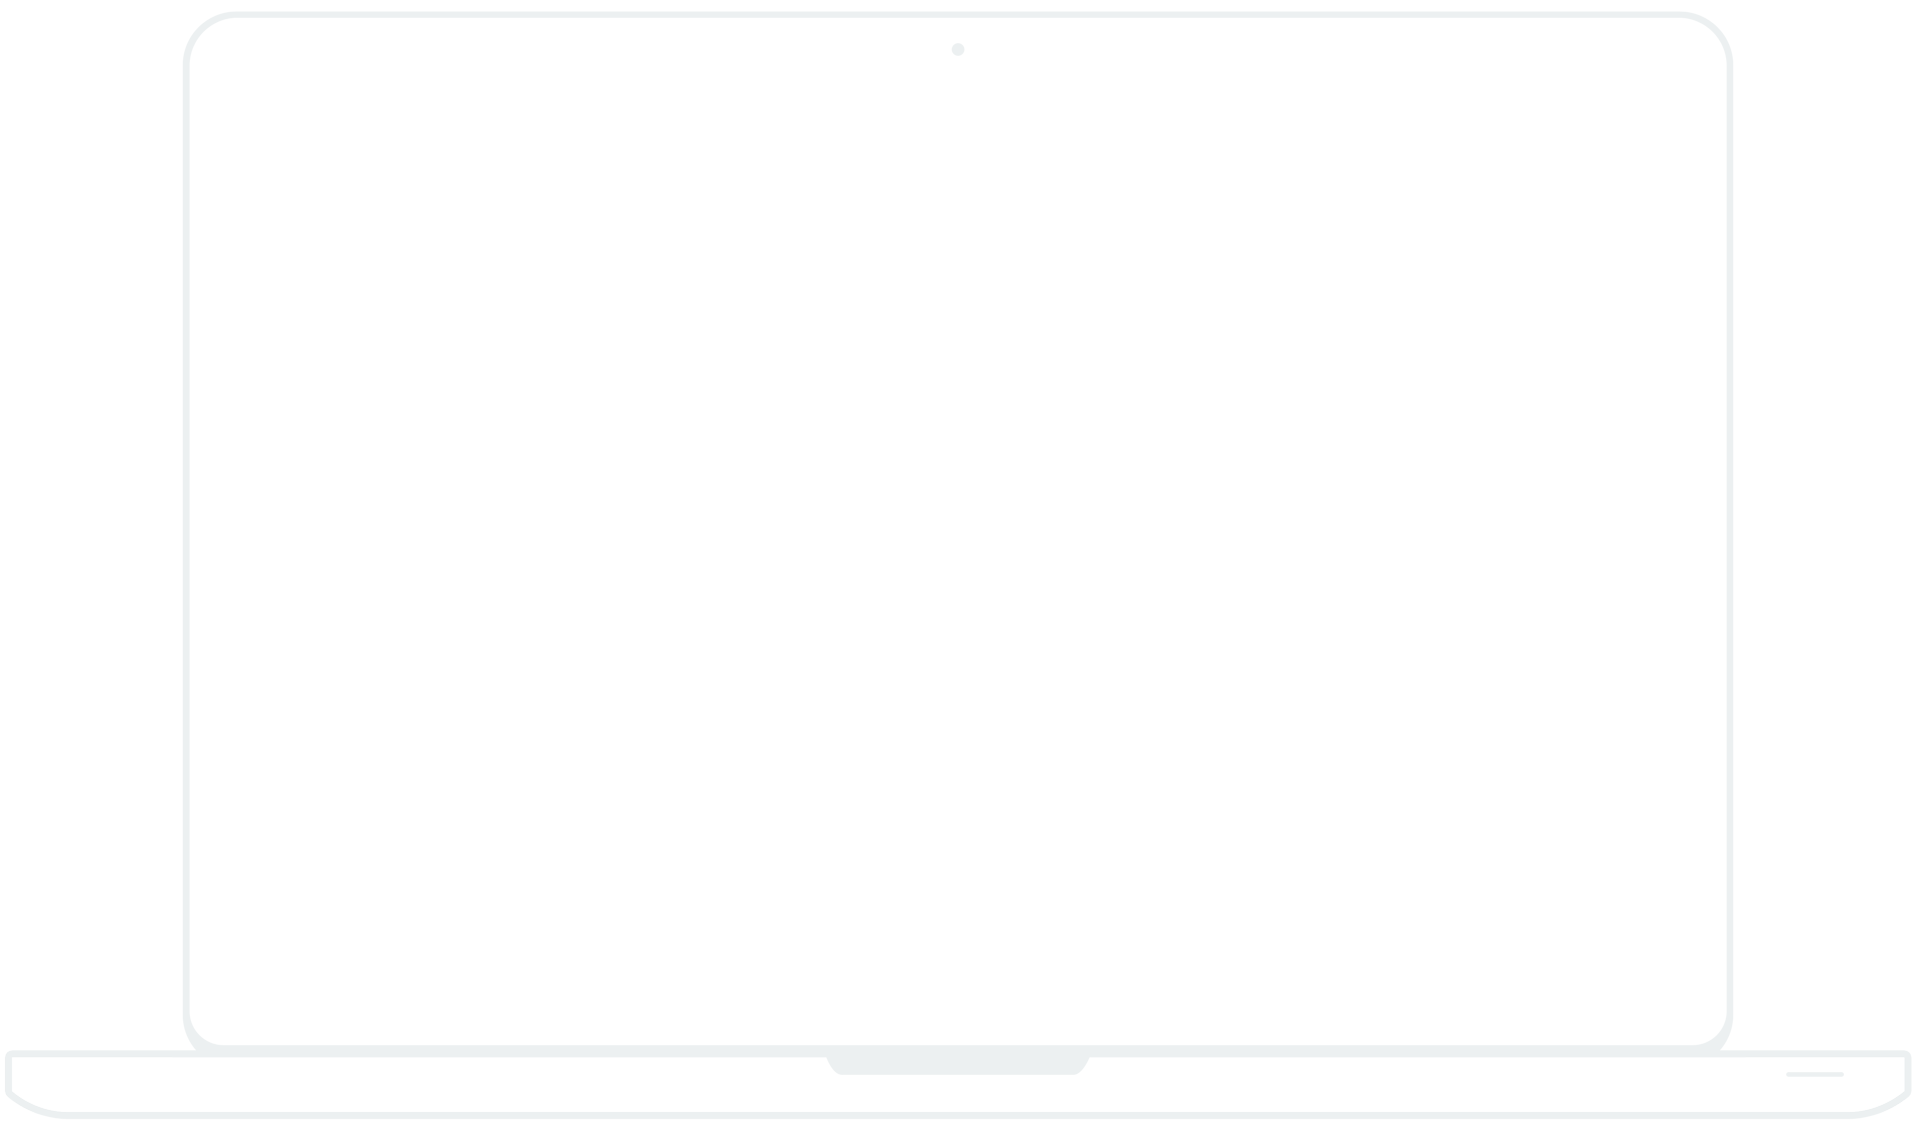 White square outline png. Order sumo worldclass food